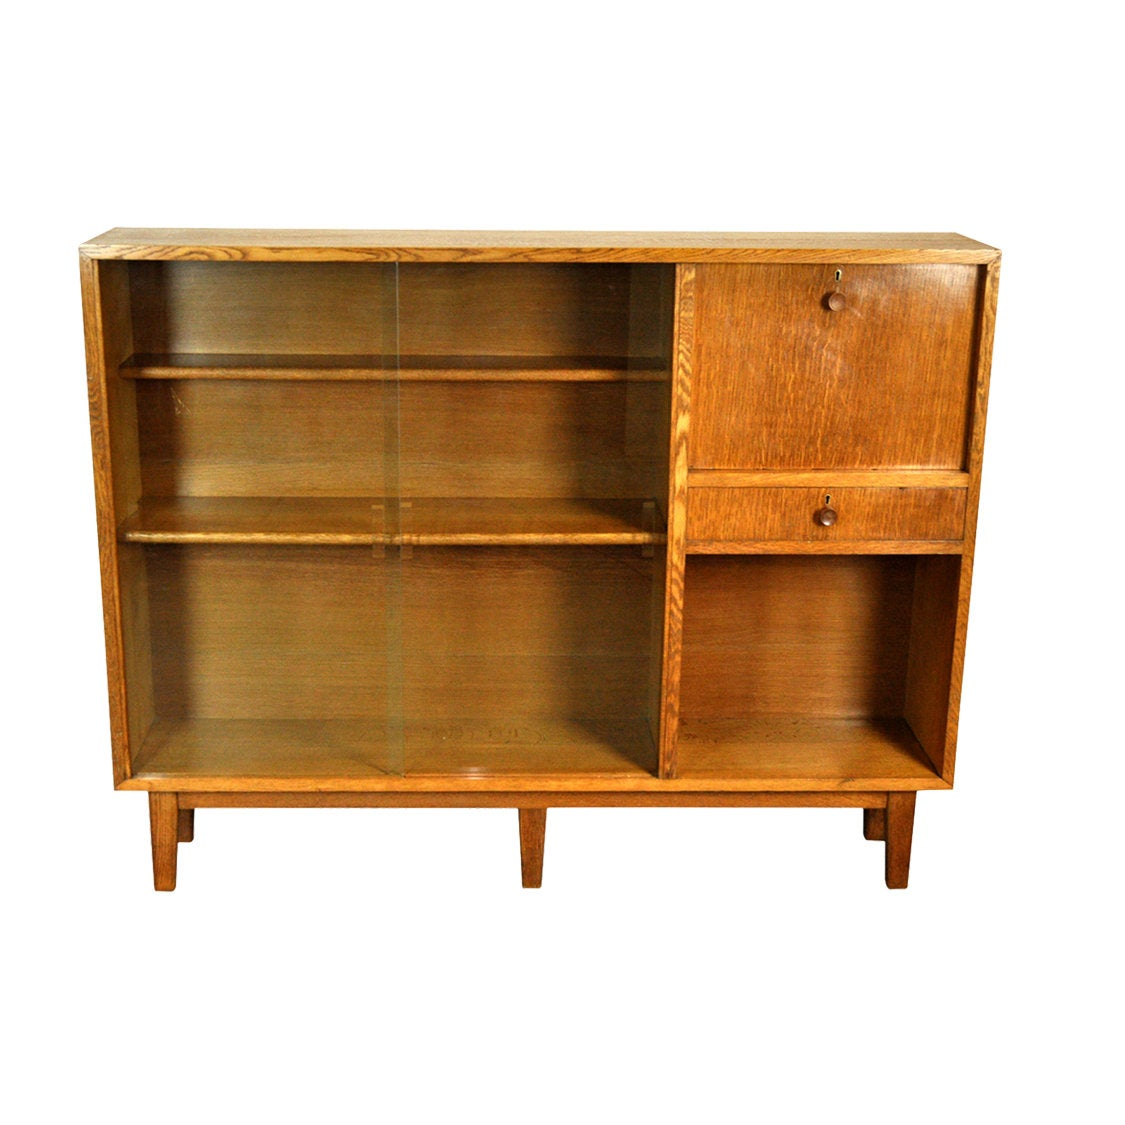 Mid Century Oak Wall Unit or Bookcase by H. Baldock - AndersBrowne Interiors